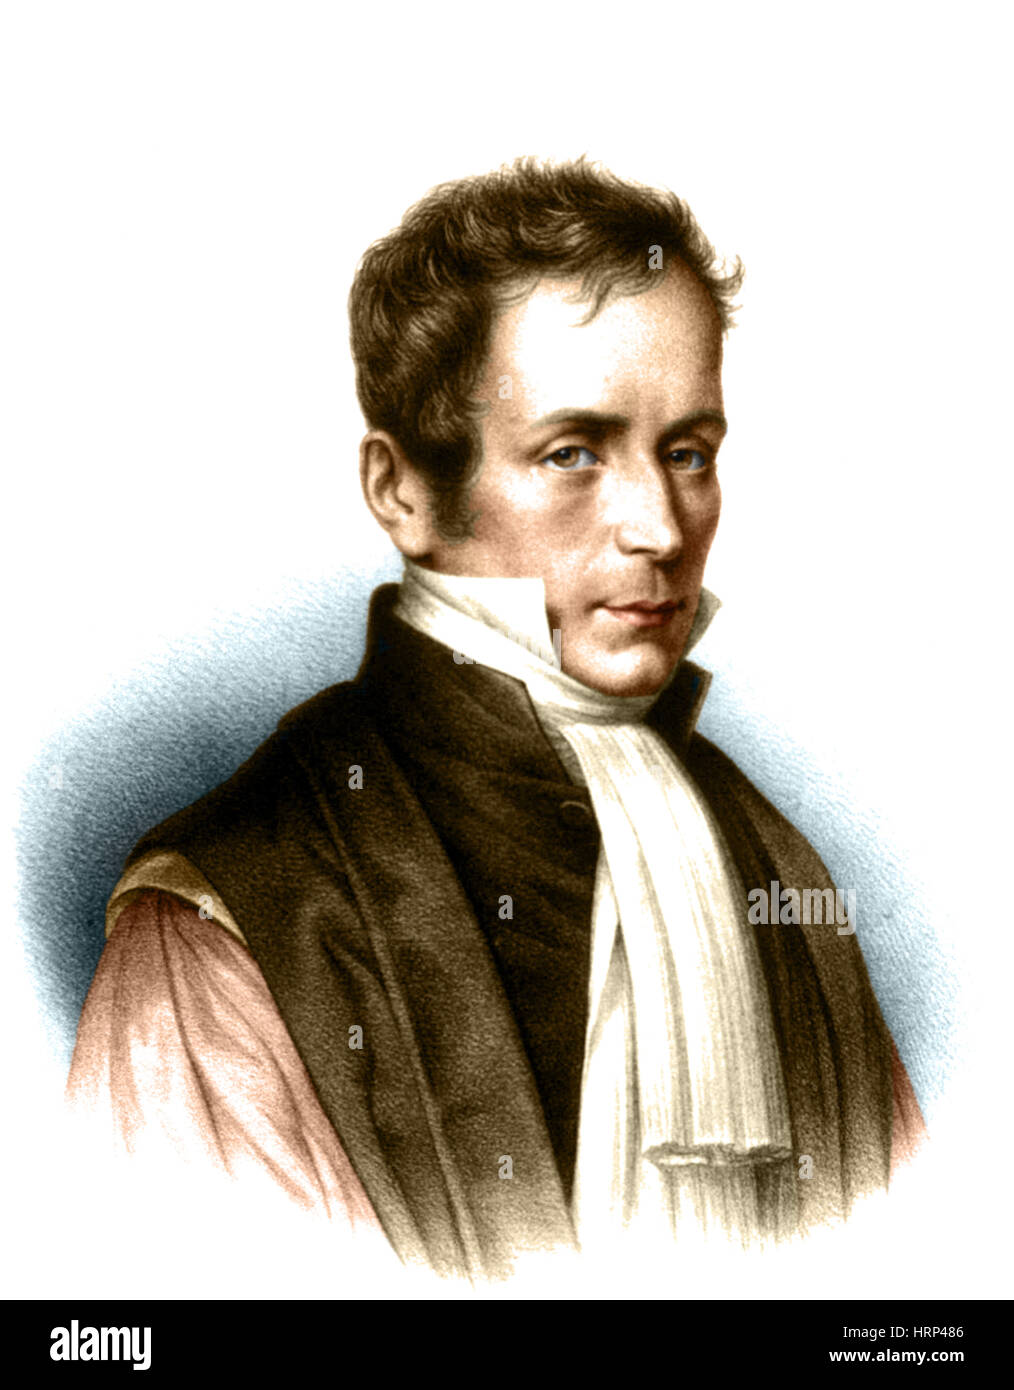 Rene Laennec, French Physician and Inventor Stock Photo